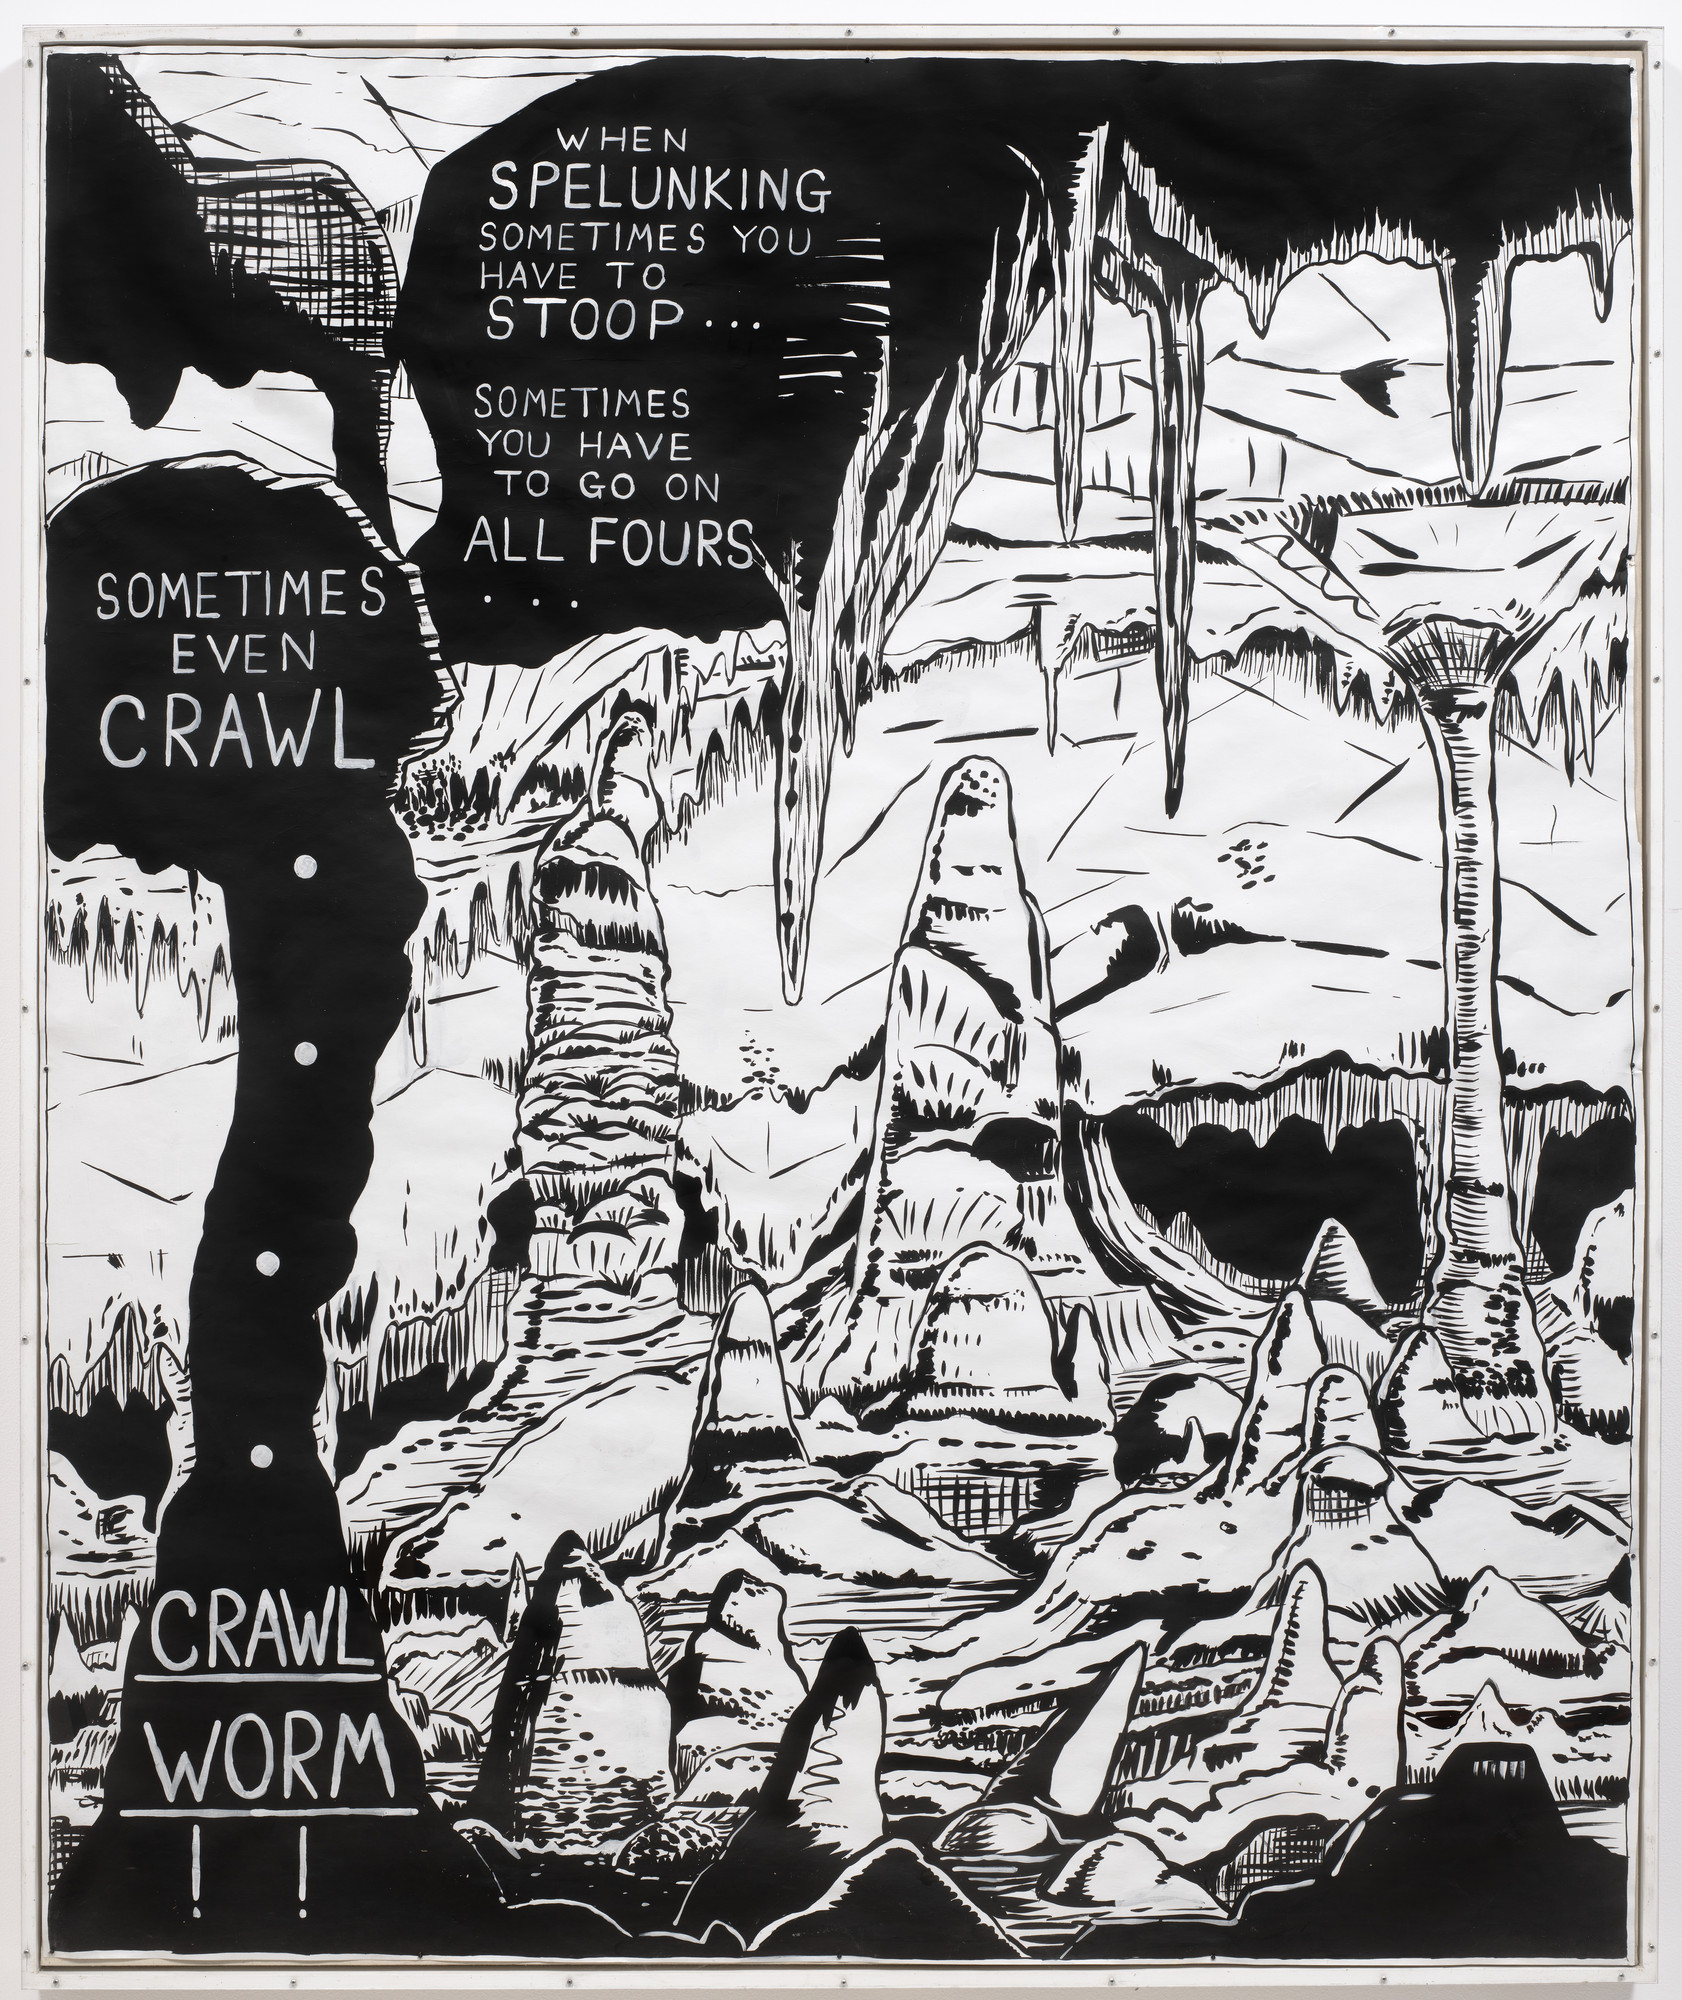 Mike Kelley. Exploring from Plato's Cave, Rothko's Chapel, Lincoln's Profile. 1985